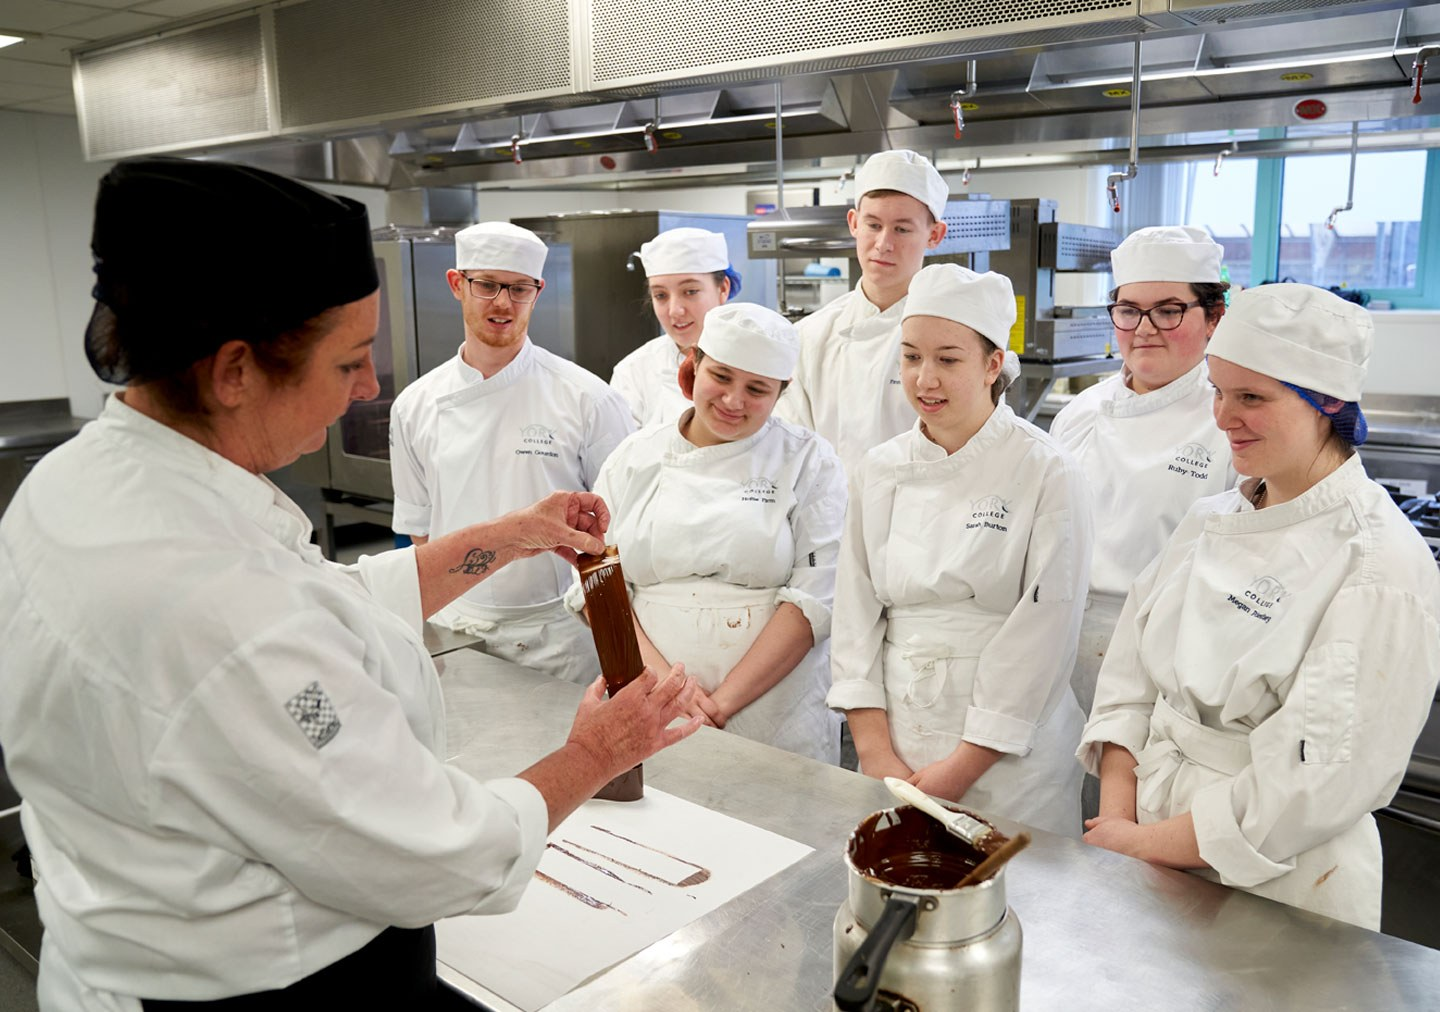 Patisserie and Confectionery students watching a demonstration by the tutor